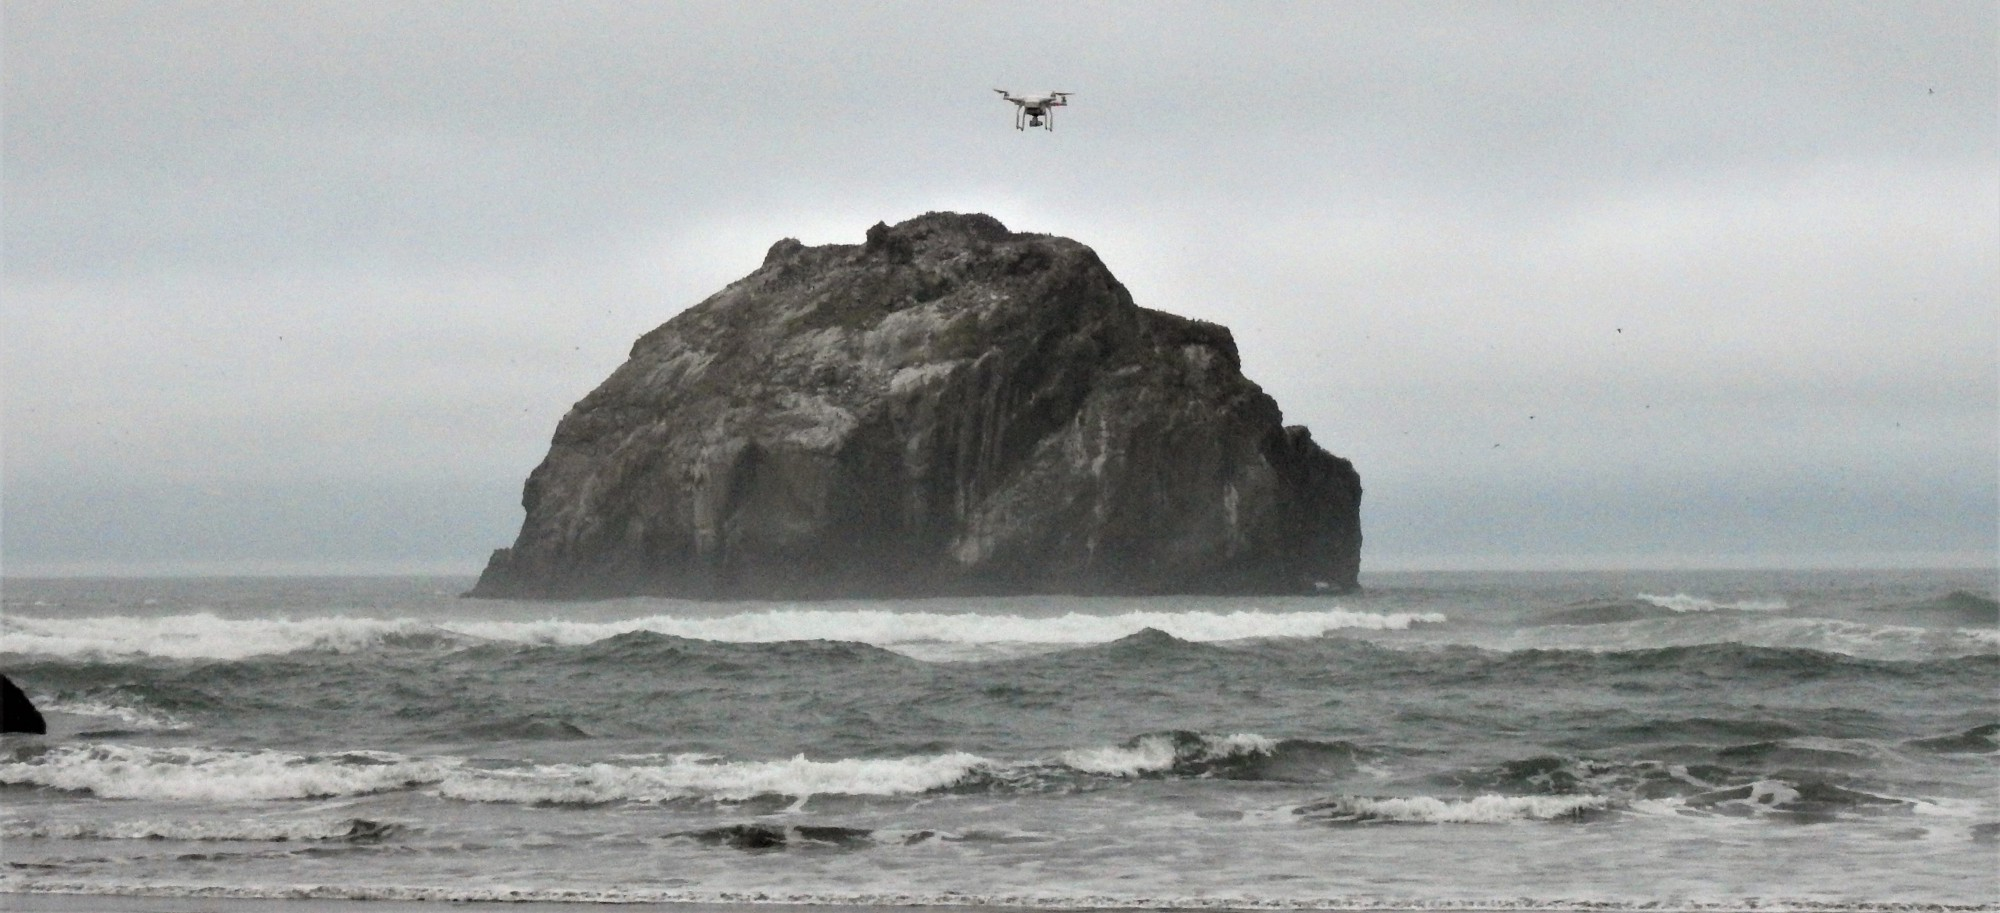 An unmanned aircraft system (aka drone) explores the beach on the Oregon Coast. Photo by Diane Bilderback